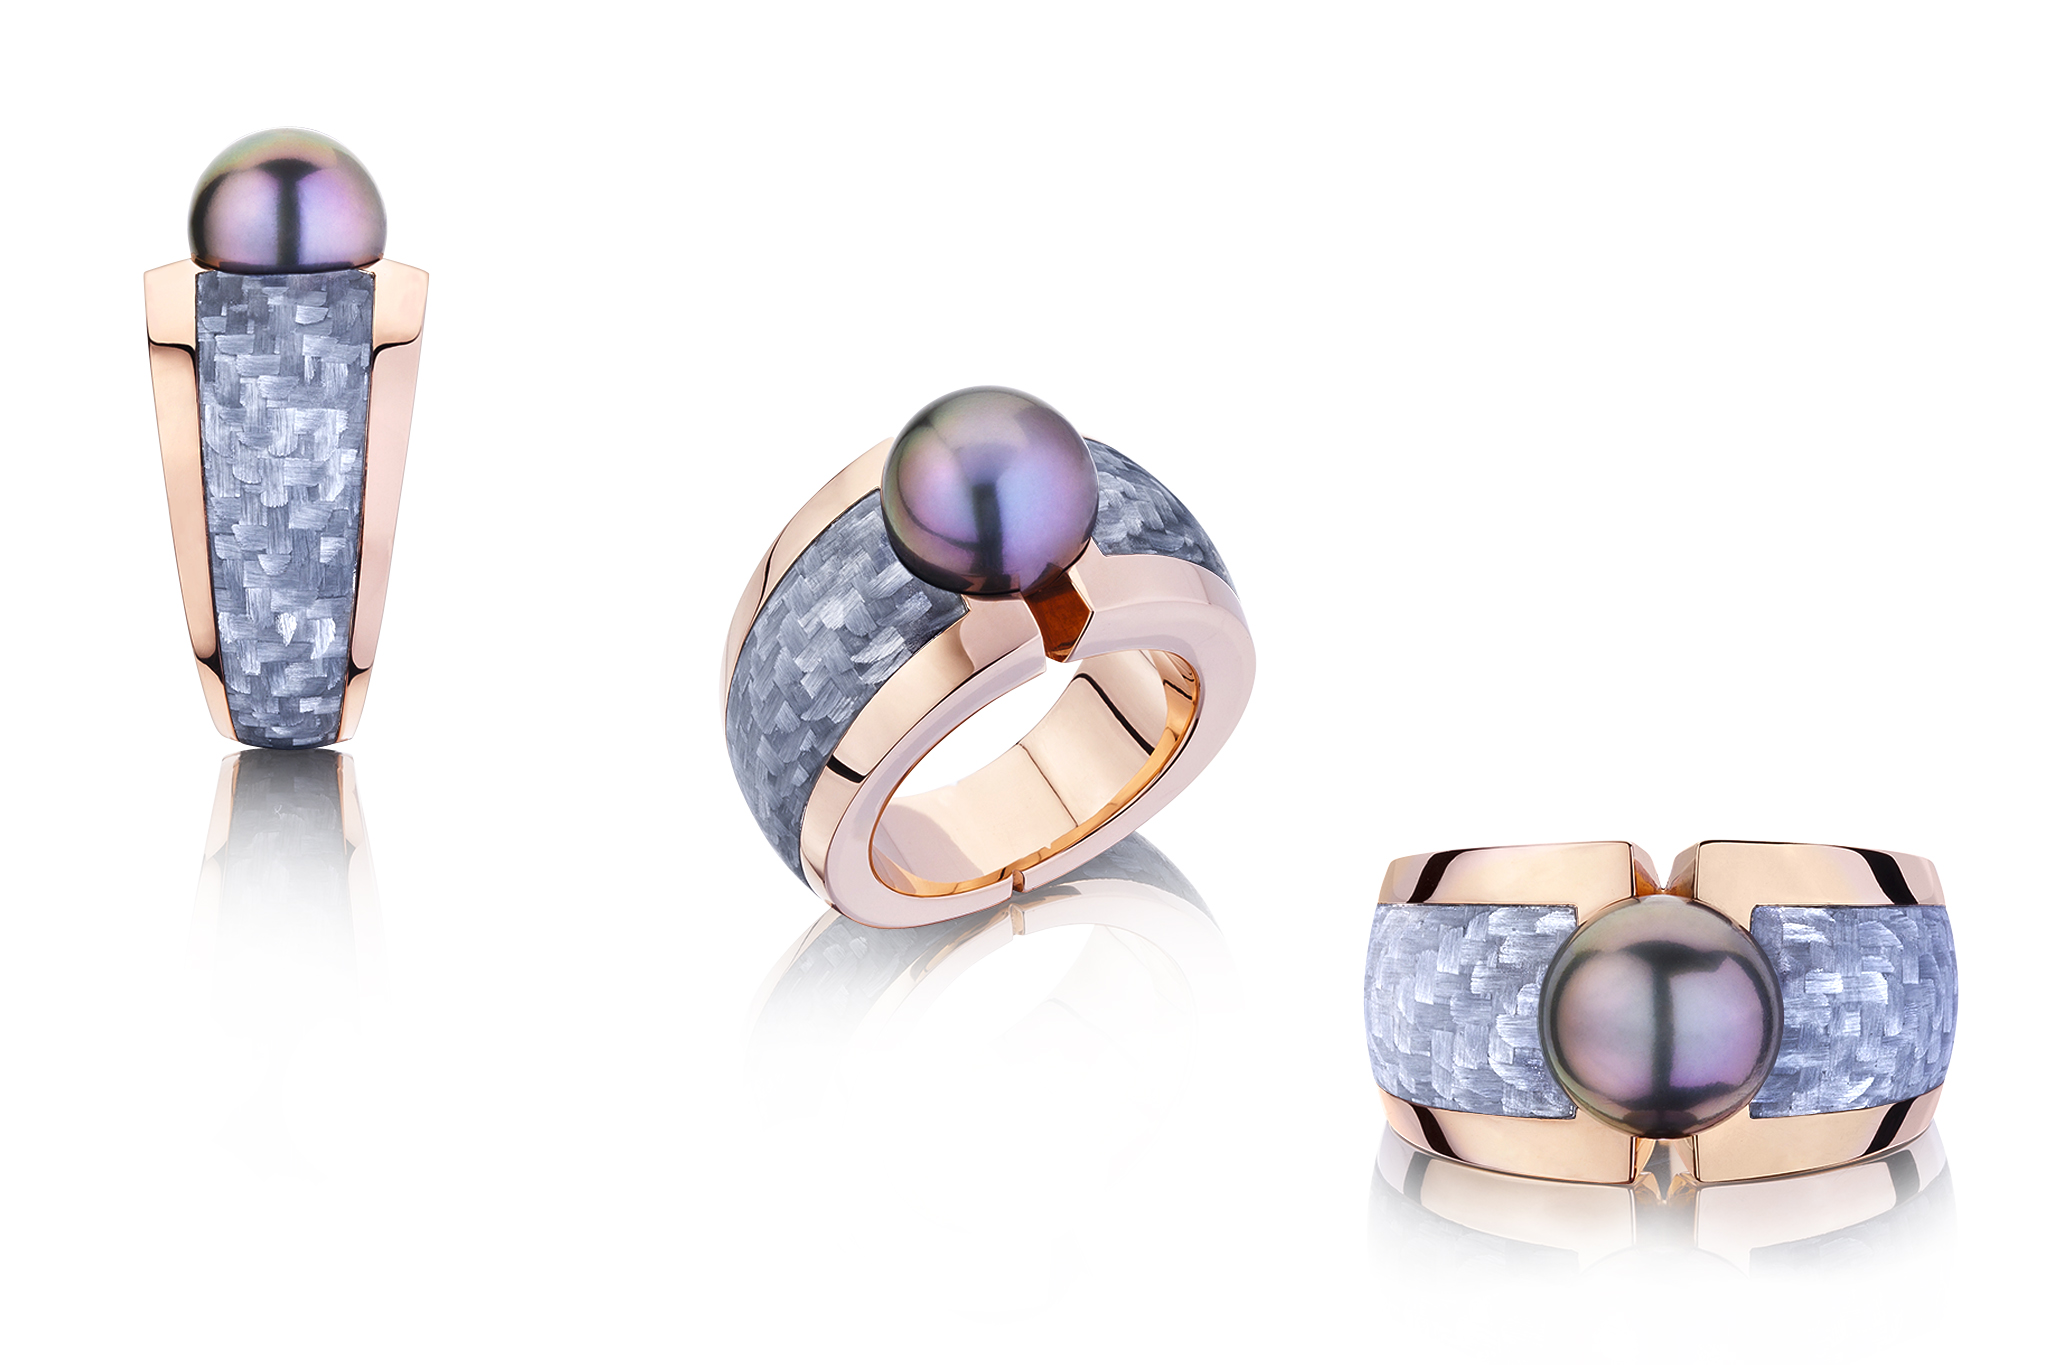 ring_rotgold_alutex_tahiti-perle_messerer-juwelier-zuerich.jpg